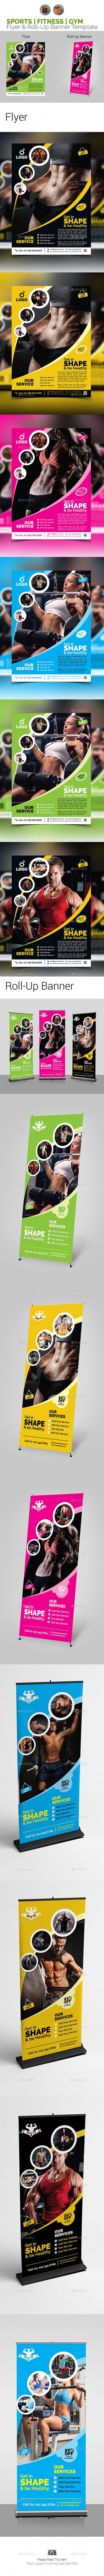 Gym | Fitness Flyer & Rollup Bundle - Print Templates